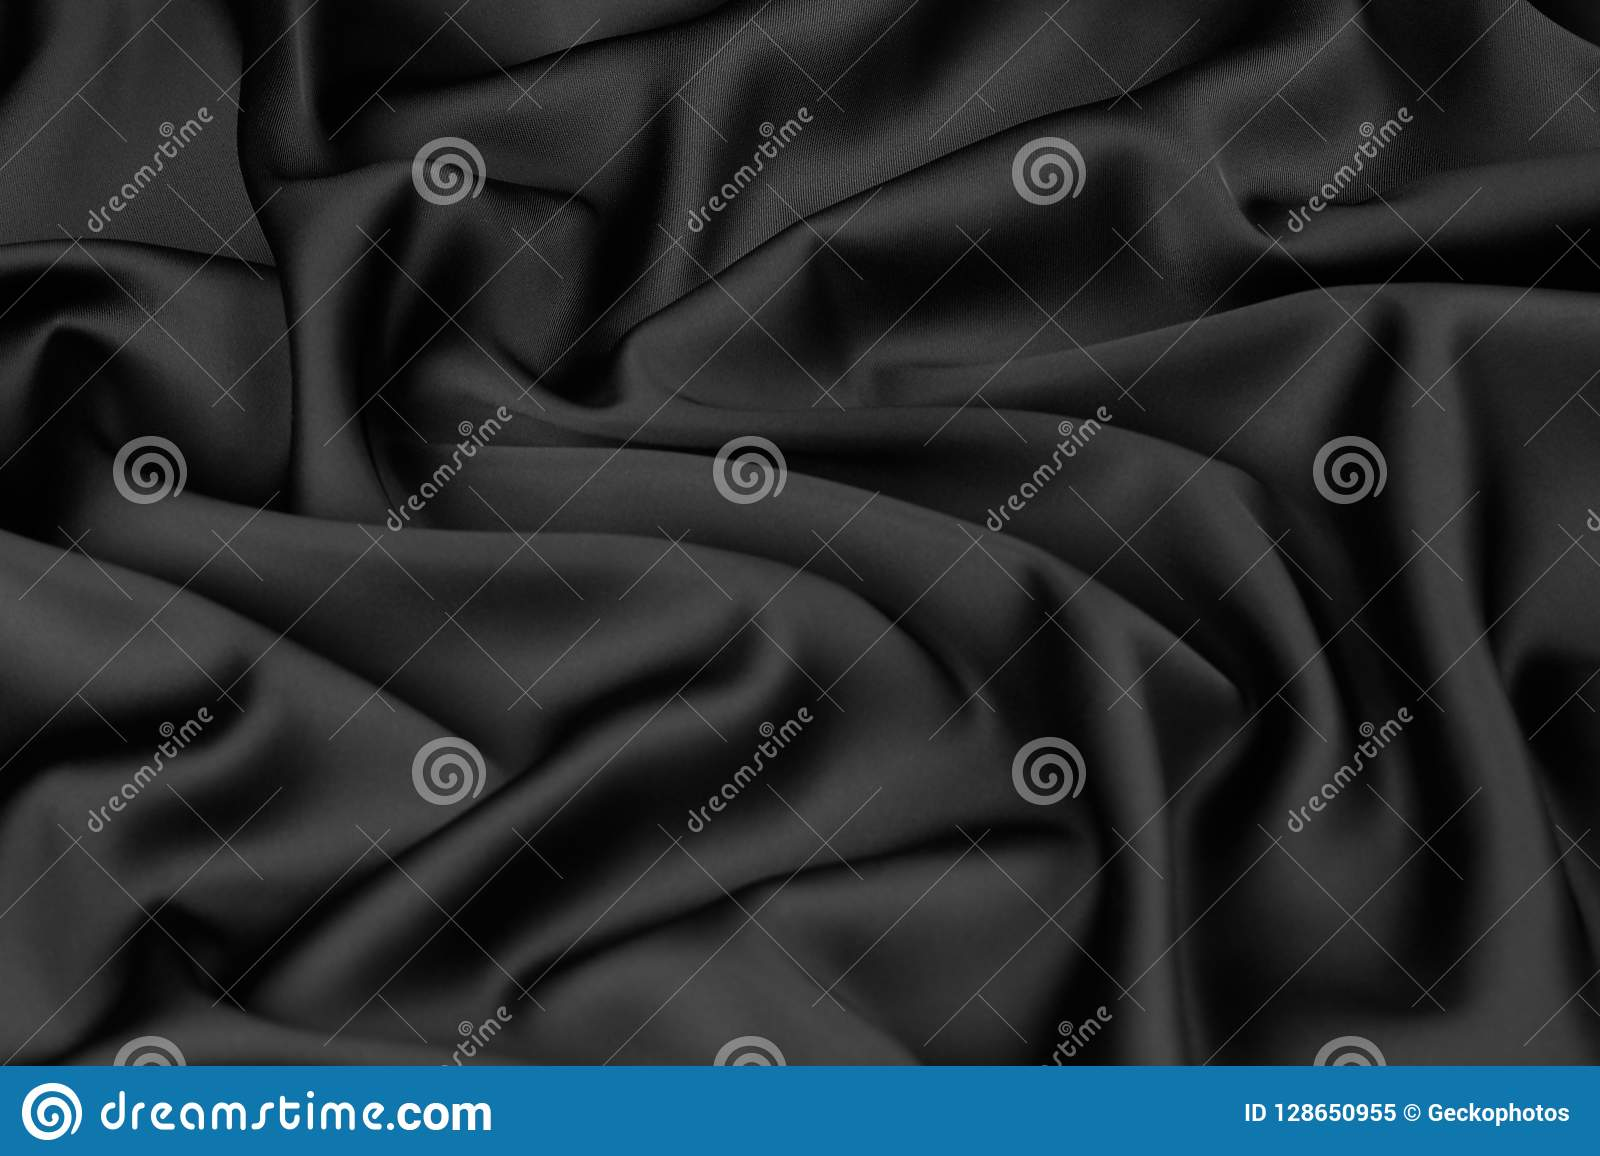 bedda661d2f7d7 Smooth elegant black silk or satin luxury cloth texture can use as abstract  background with copy space, close-up